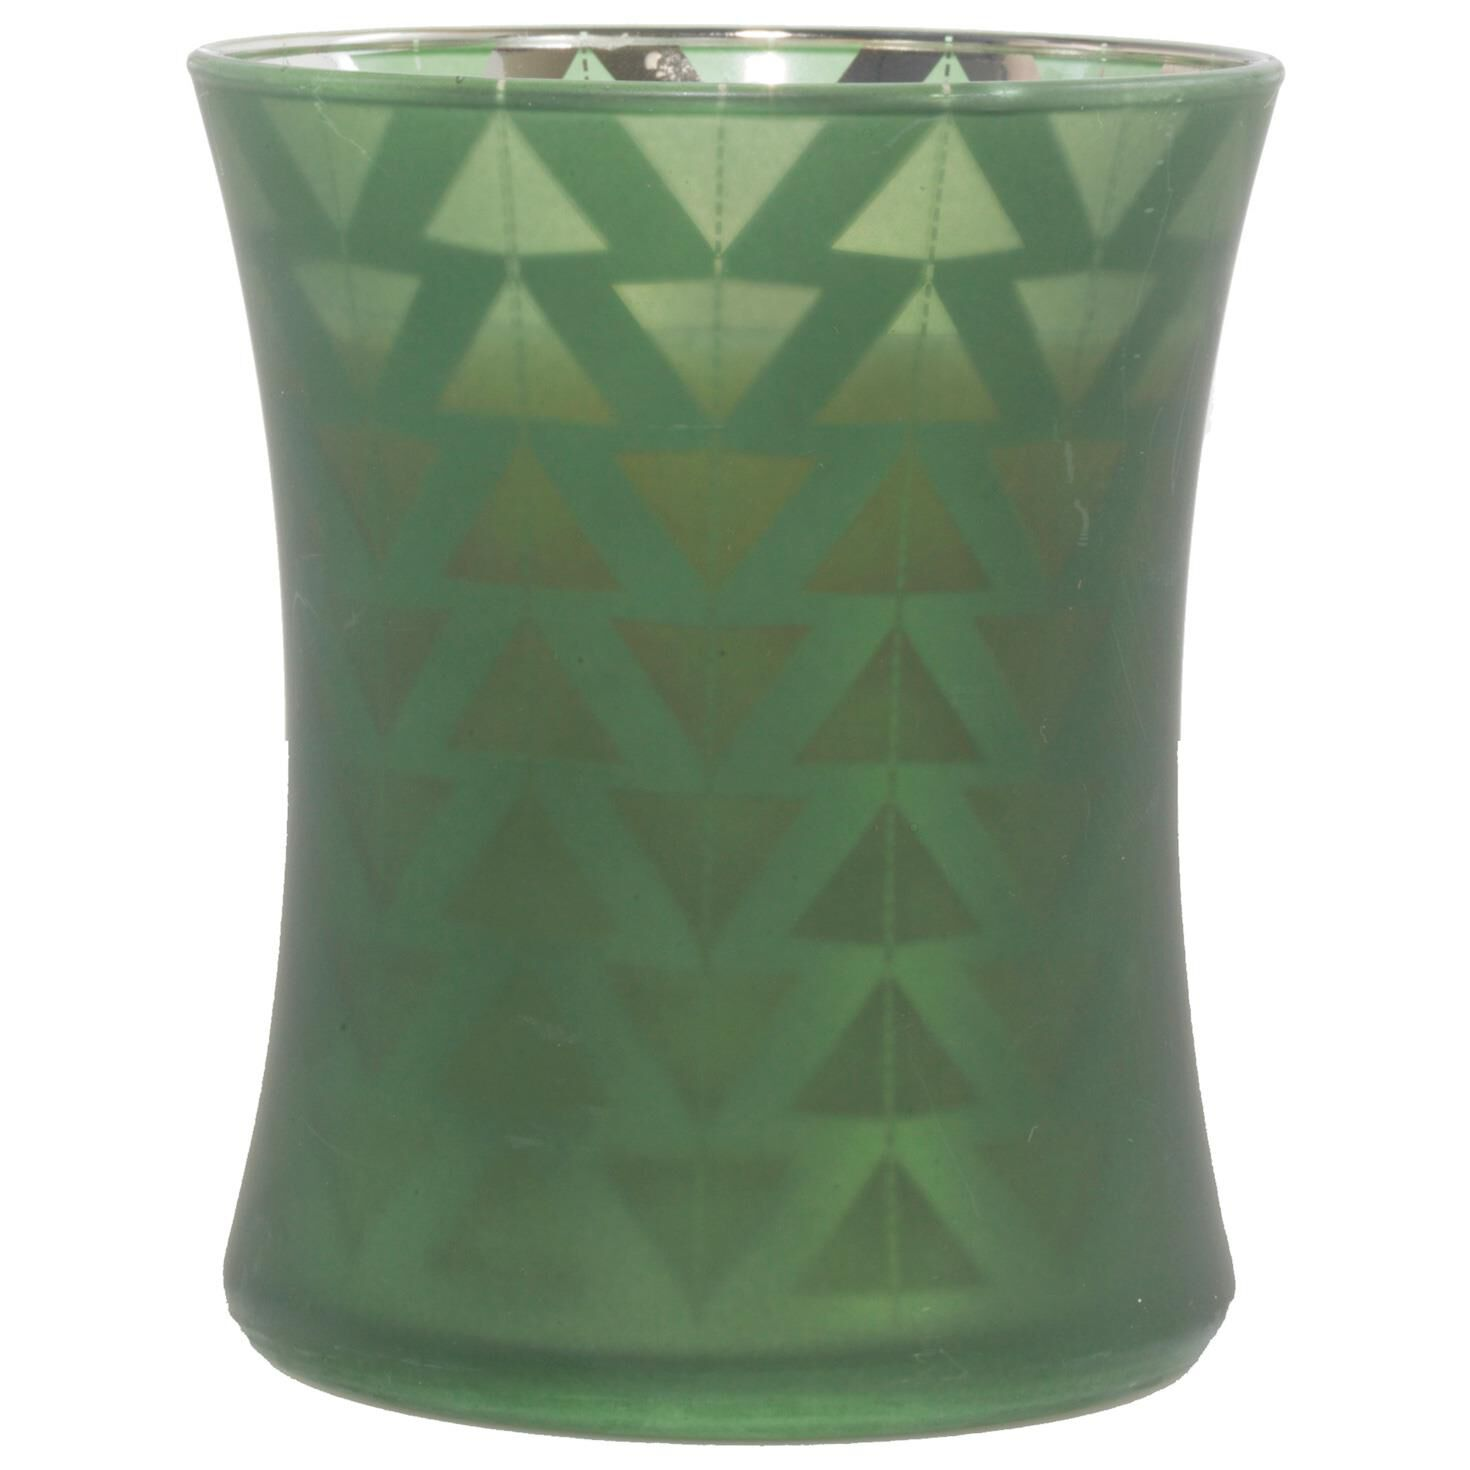 graphic about Crucible Candle Printable referred to as WoodWick® Candles, Diffusers Automobile Vents Hallmark